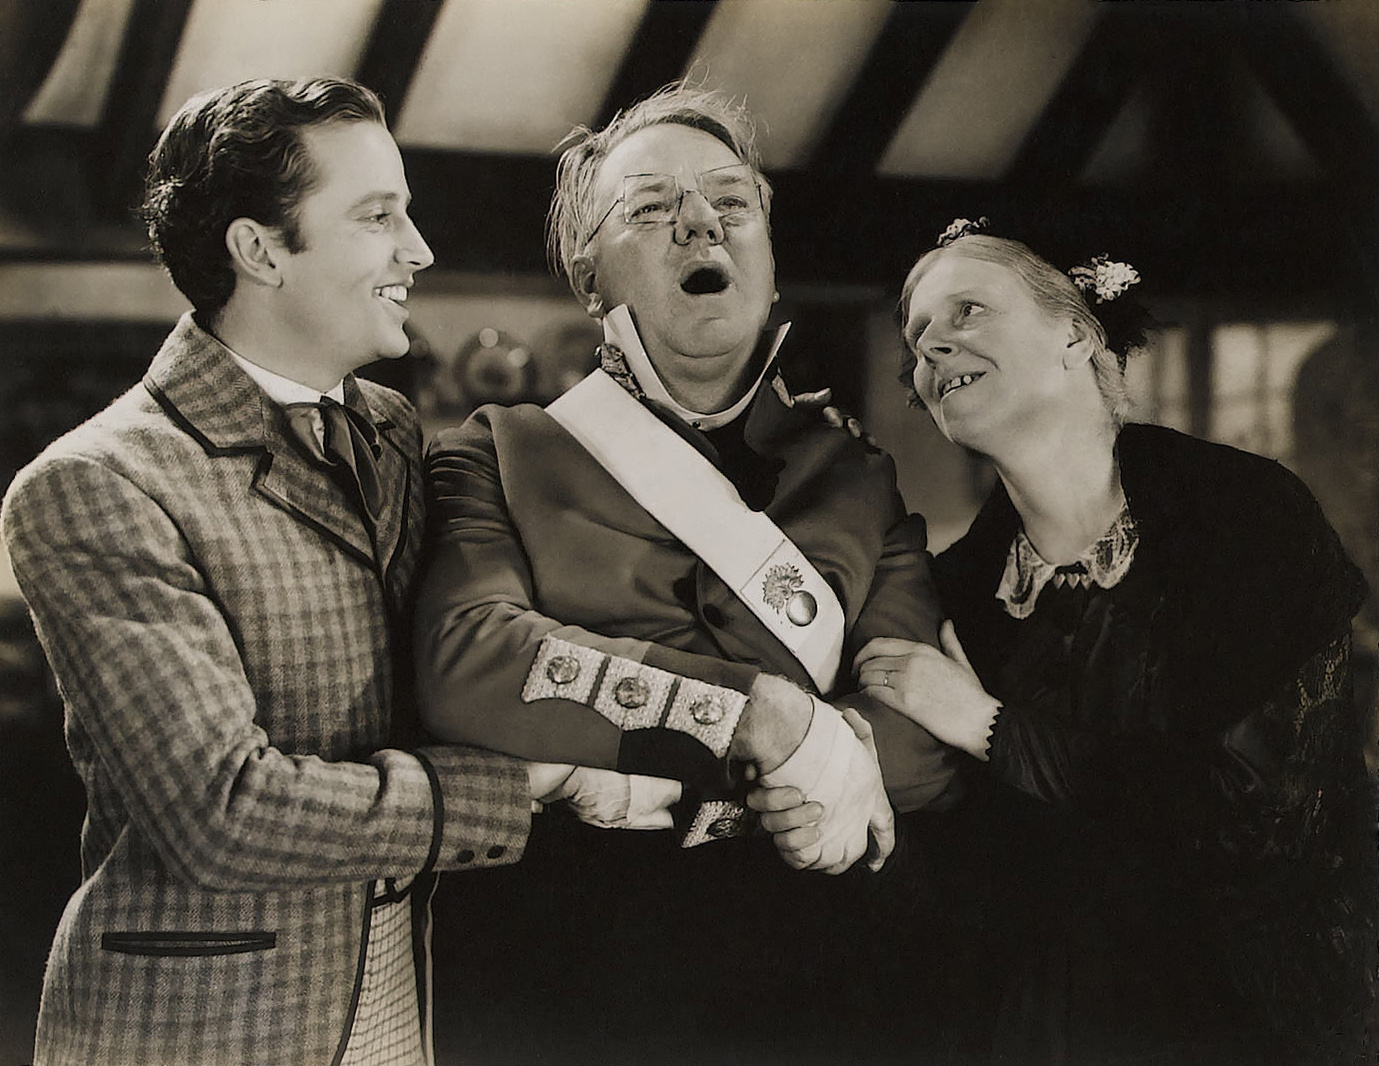 W C. Fields with Jean Cadell and frank lawton